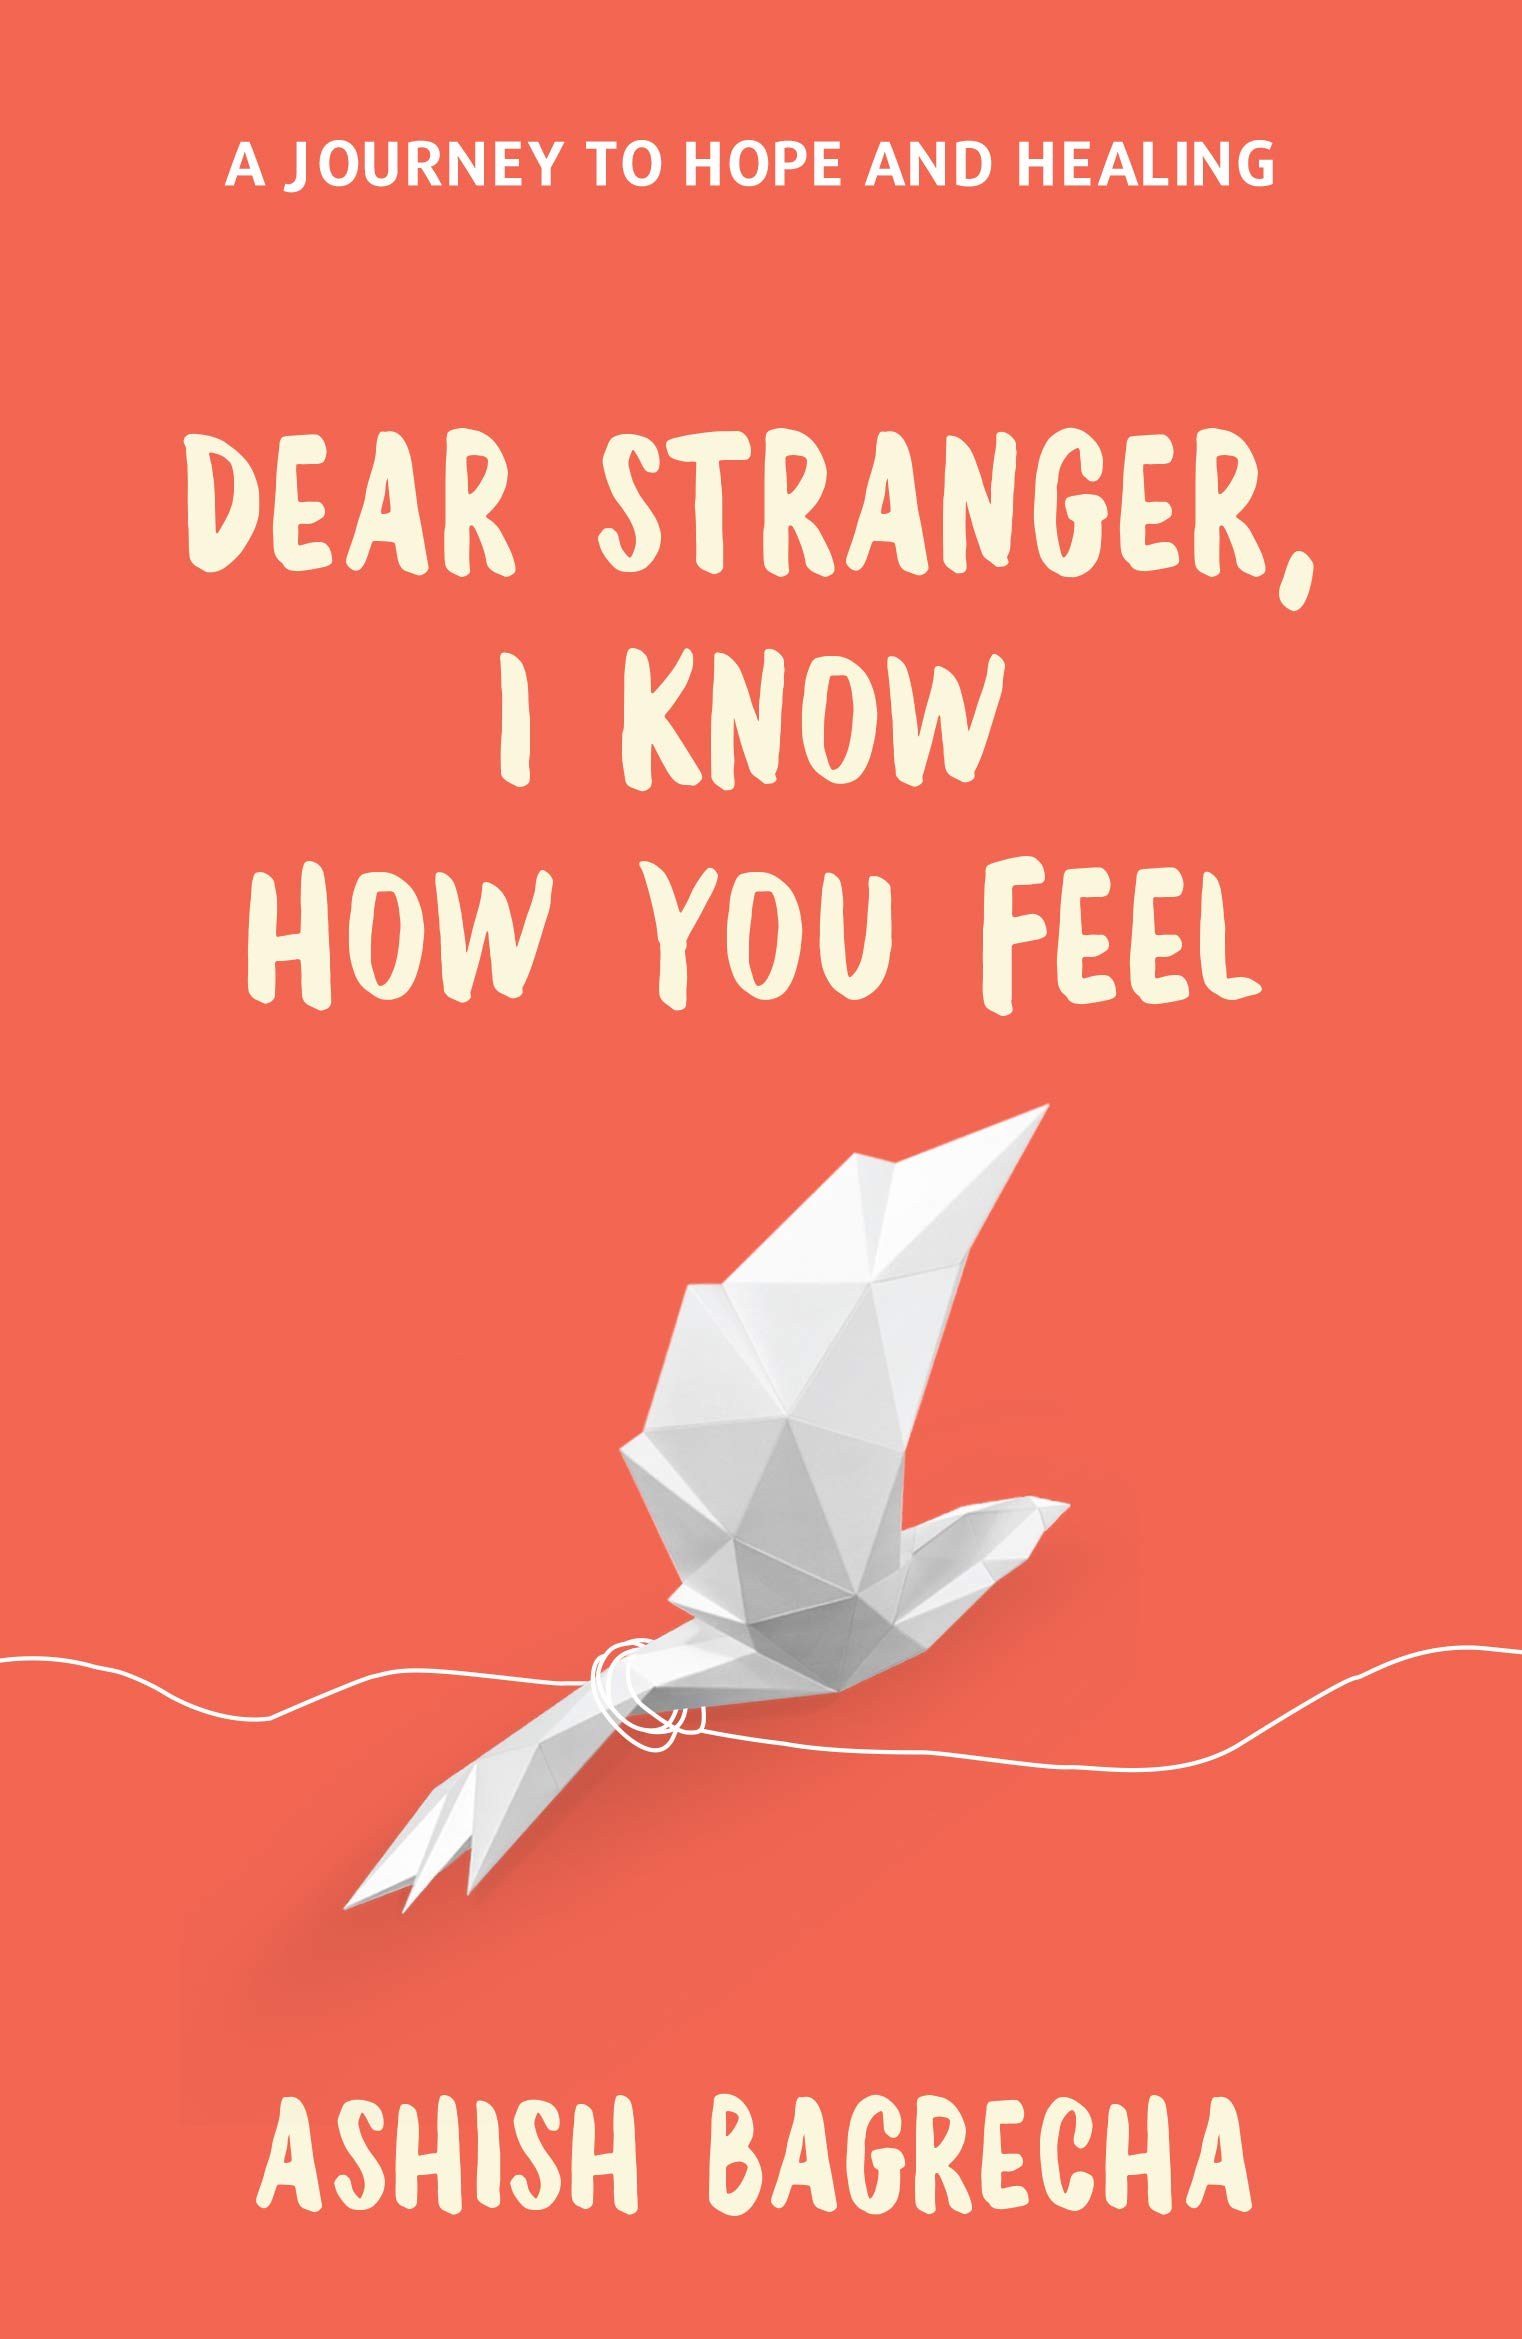 Dear Stranger, I Know How You Feel | Book Inspirational